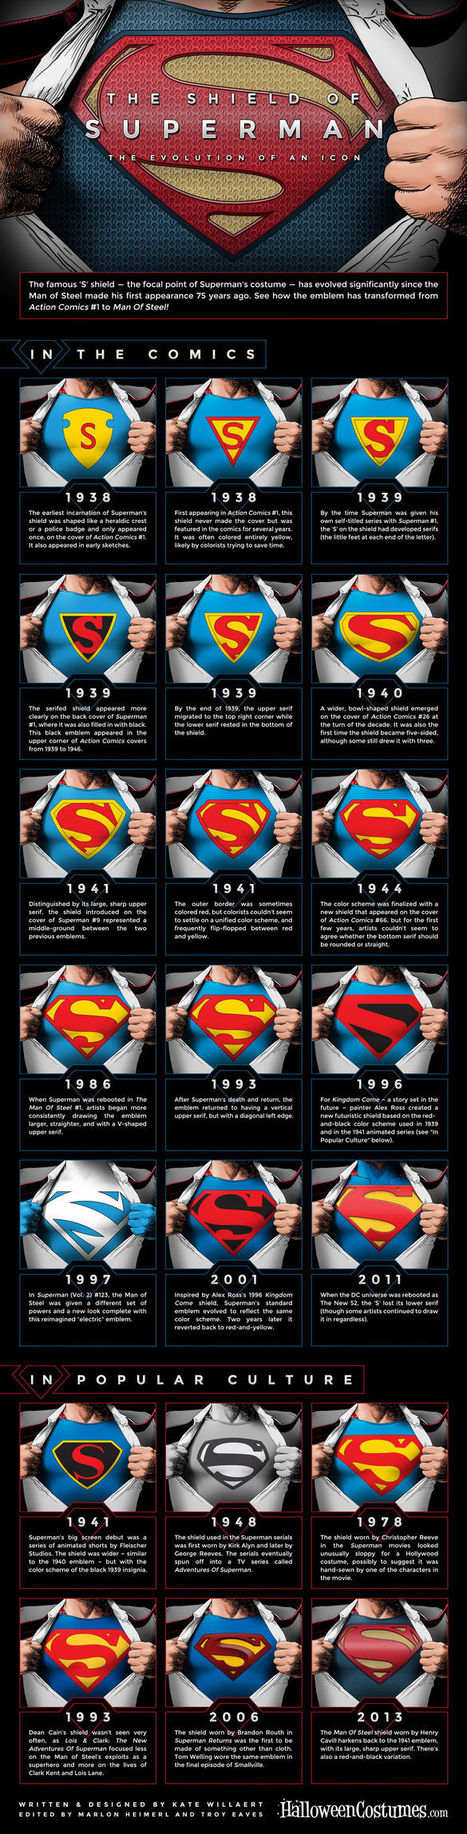 Infographic: The Evolution of the Superman Logo From 1938 To Now | 21st Century Literacy and Learning | Scoop.it